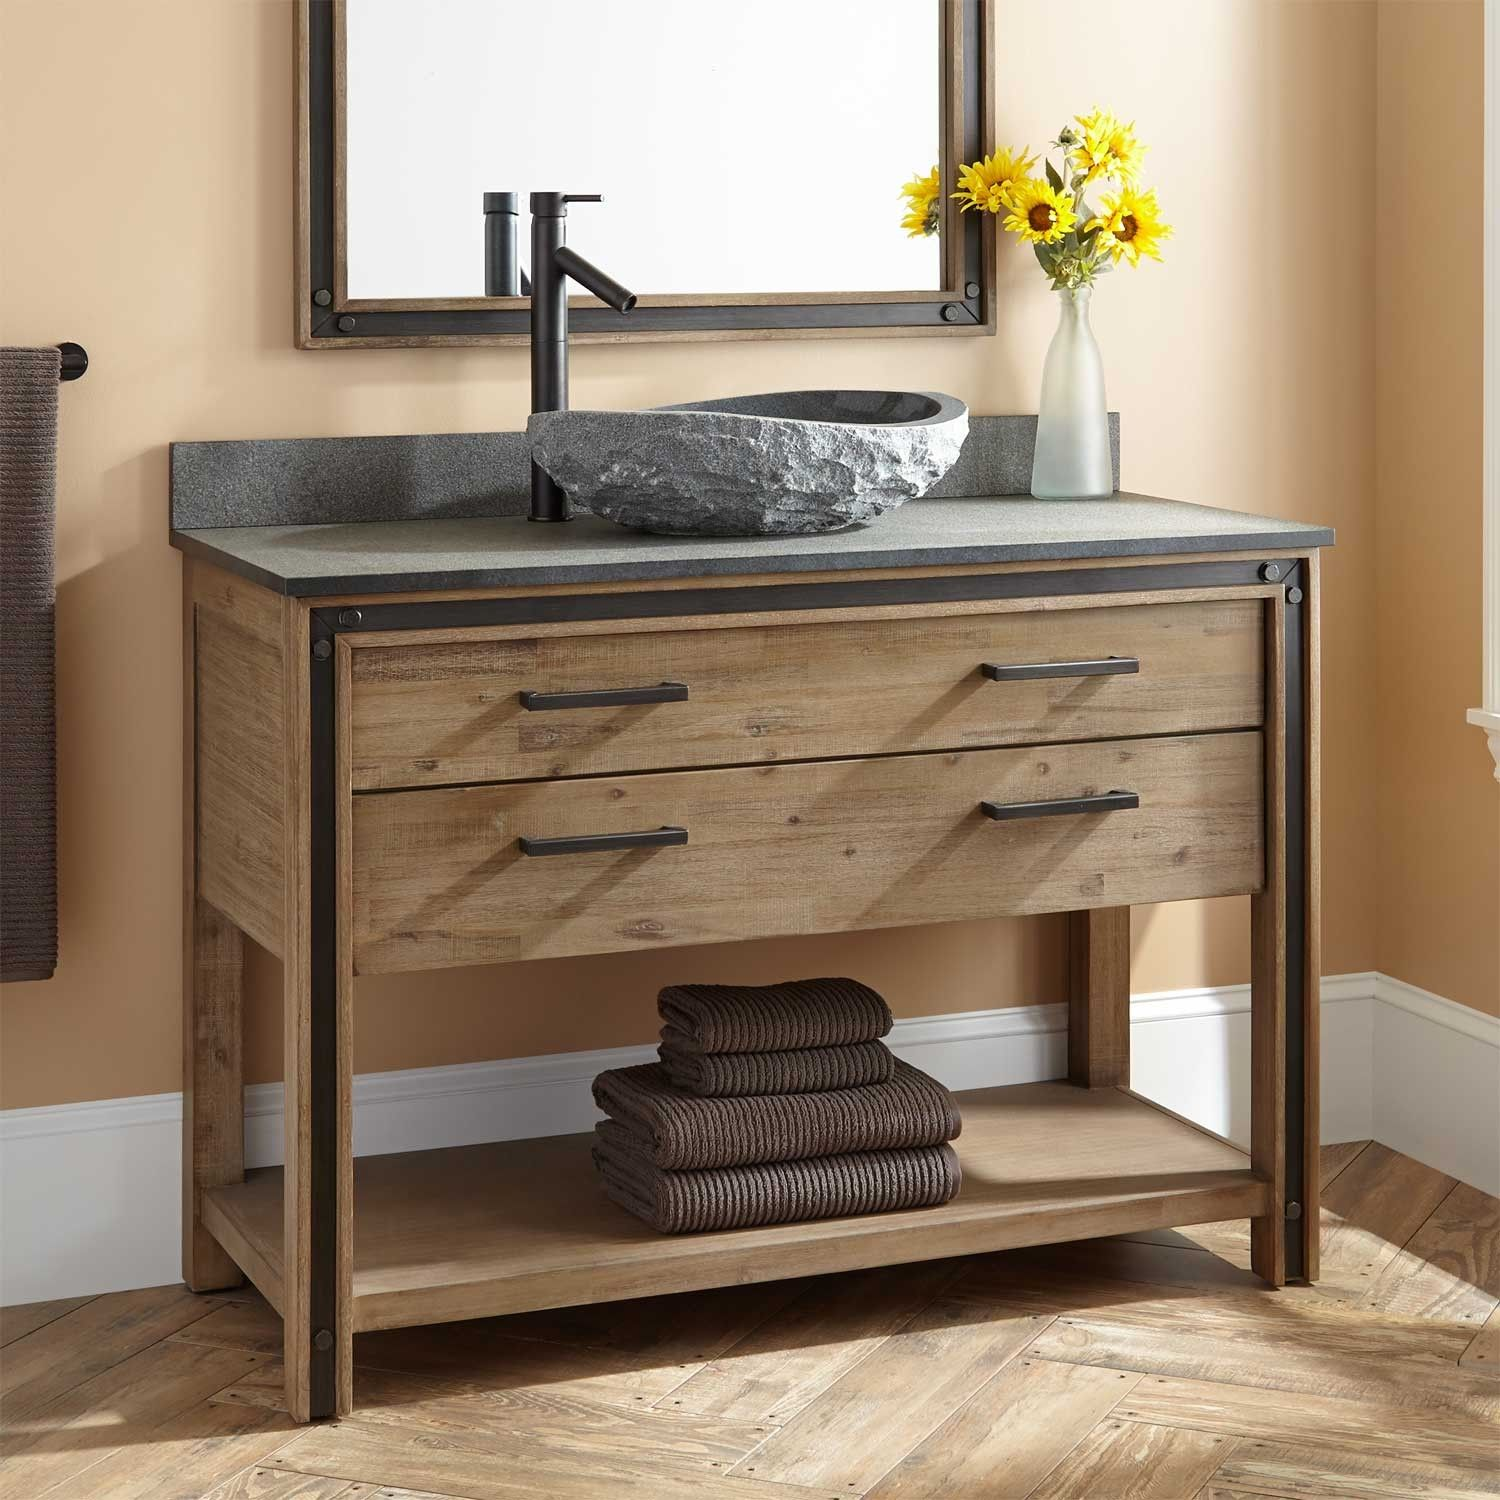 48 Quot Celebration Vessel Sink Vanity Rustic Acacia In 2019